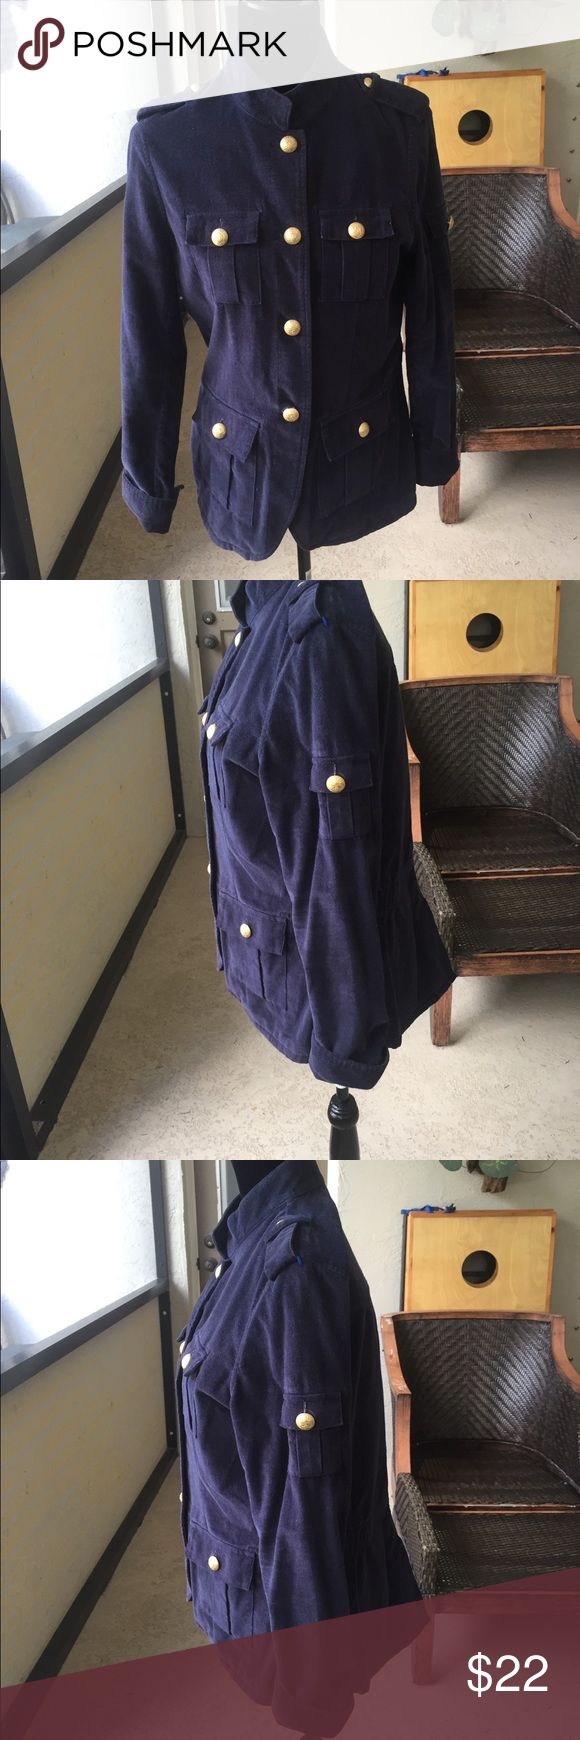 "Vintage IZOD Peacoat Size medium, 100% cotton  falls 25"" from top of shoulder, sleeves cuffed at 22"". Elastic band on sides for form fitting. Metal izod buttons. Beautiful jacket Izod Jackets & Coats Pea Coats"